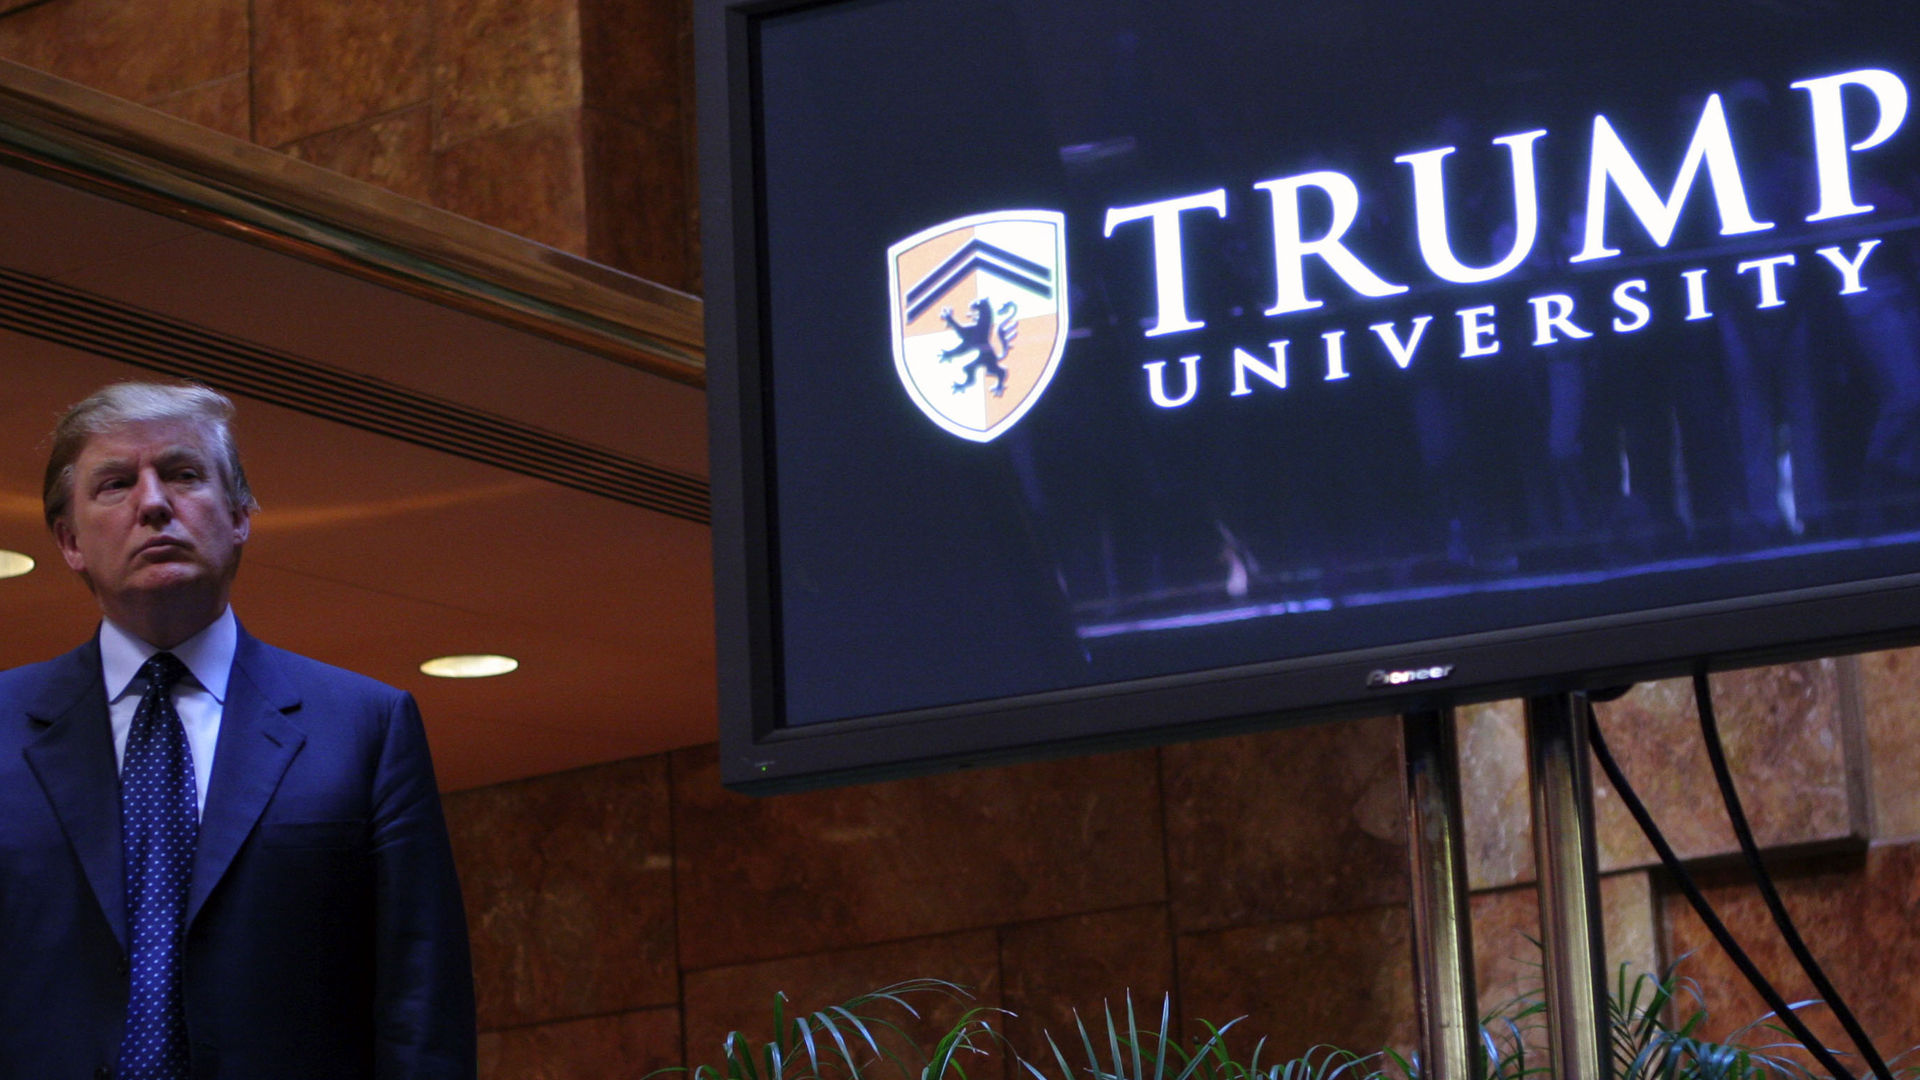 Donald Trump holds a media conference announcing the establishment of Trump University May 23, 2005 in New York City. (Credit: Thos Robinson/Getty Images)